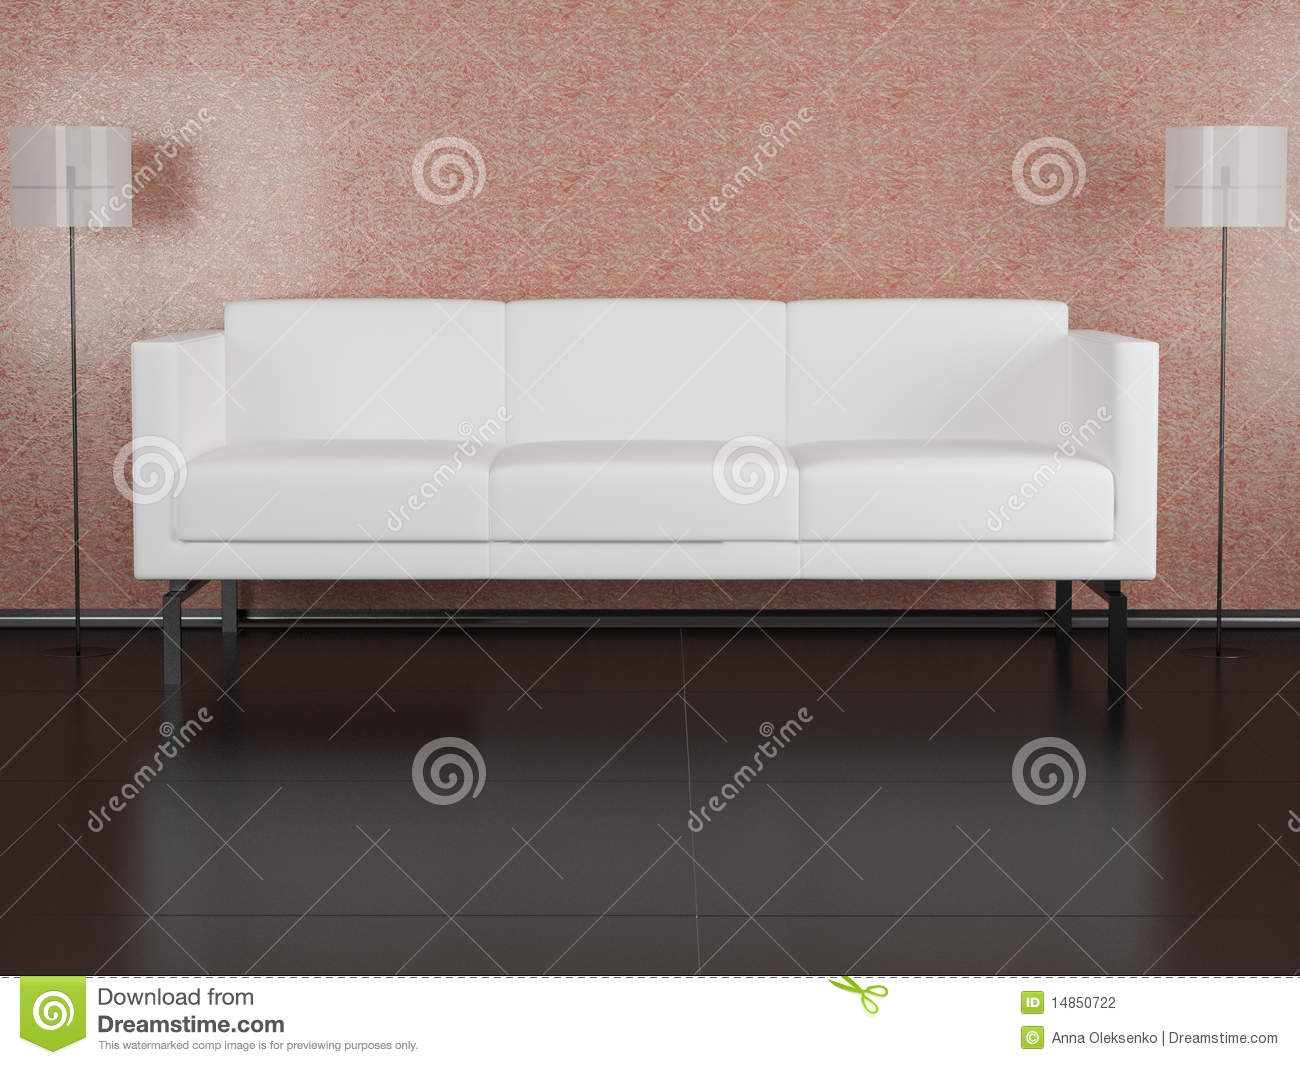 White sofa in the room